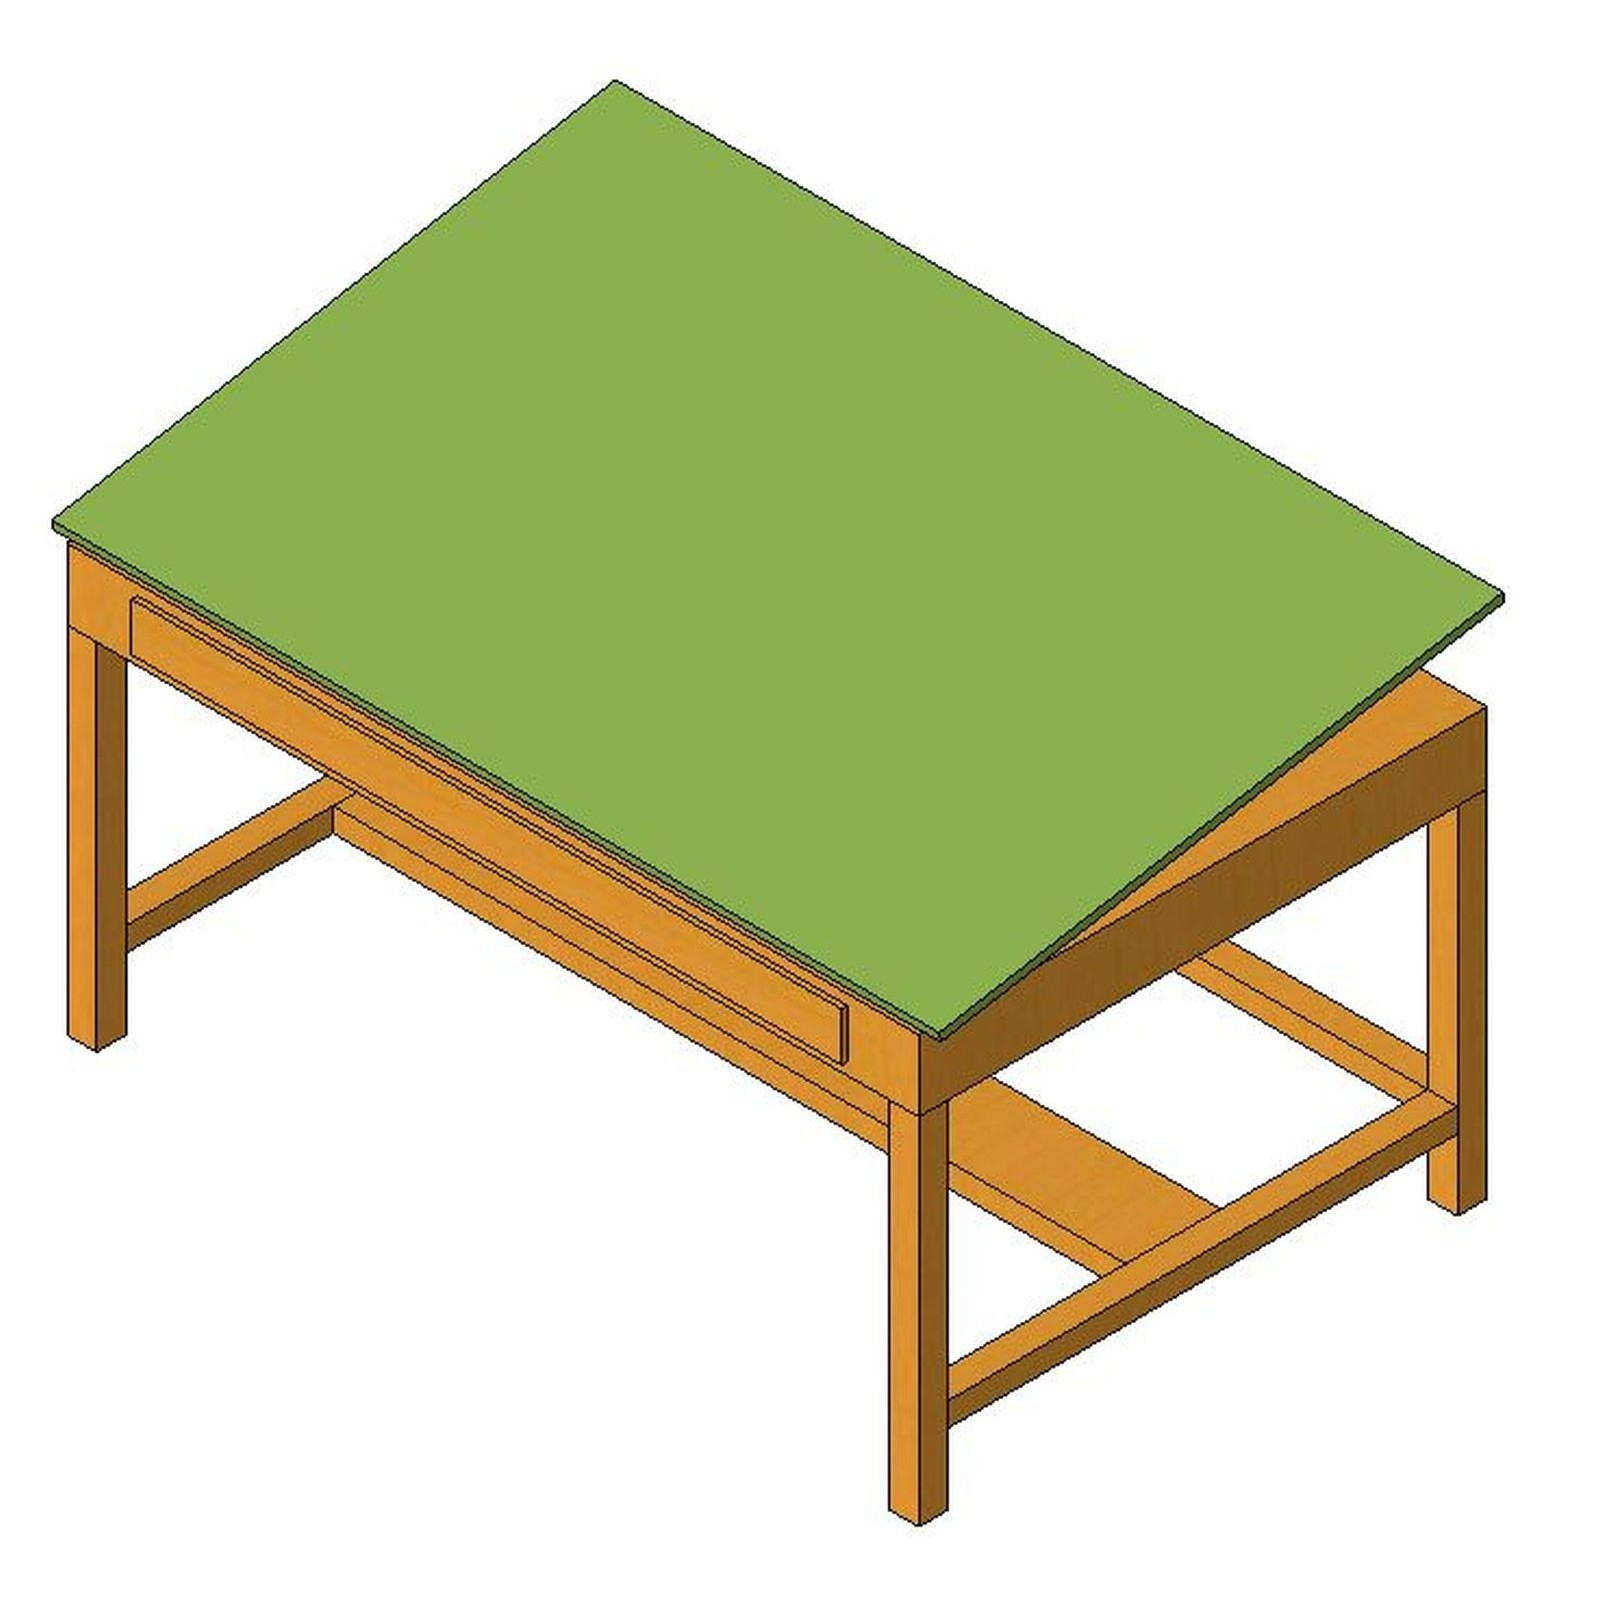 Drafting Table Design Drafting Table Design Content